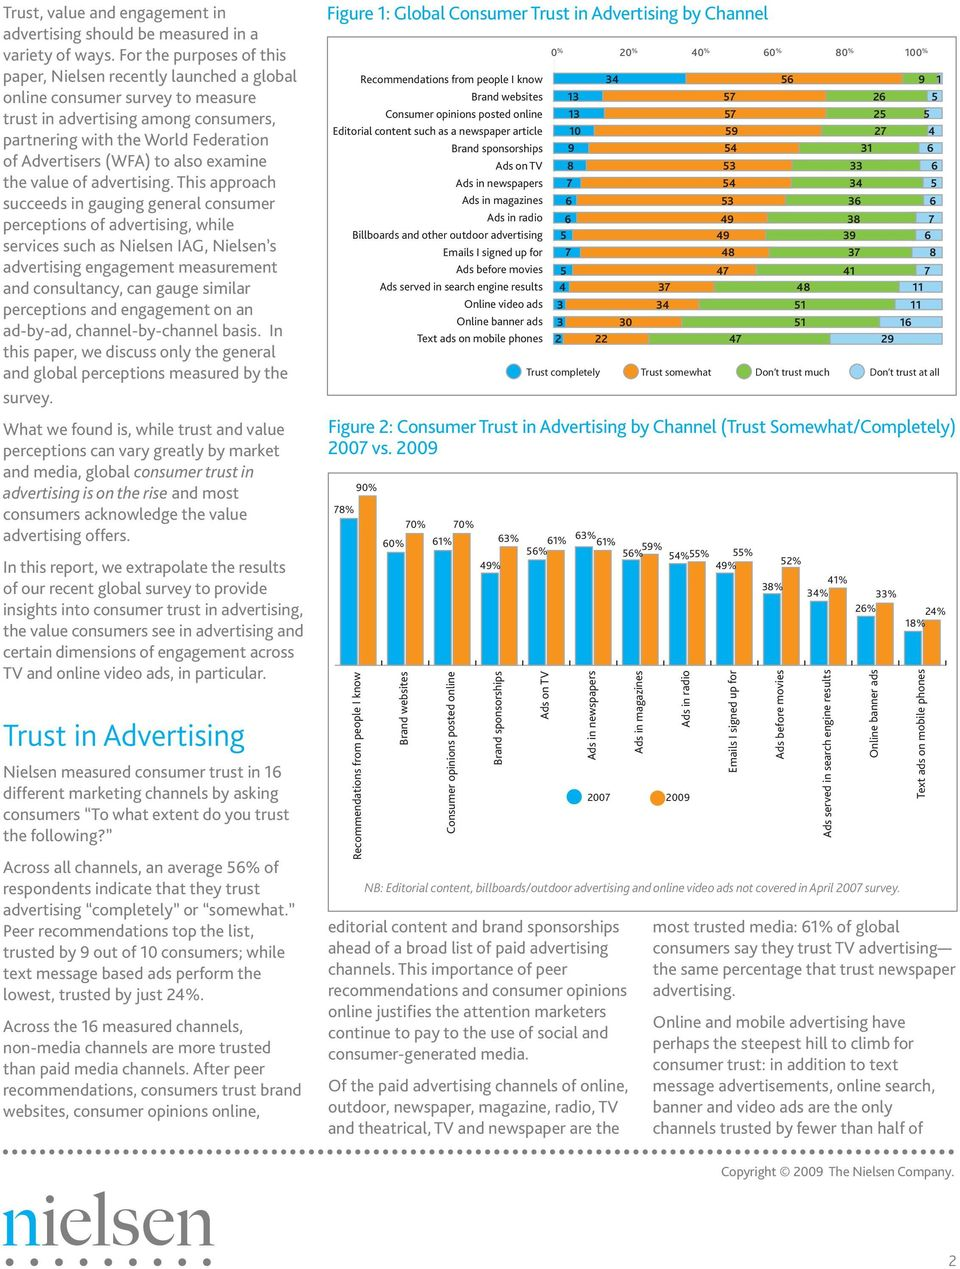 For the purposes of this paper, Nielsen recently launched a global online consumer survey to measure trust in advertising among consumers, partnering with the World Federation of Advertisers (WFA) to